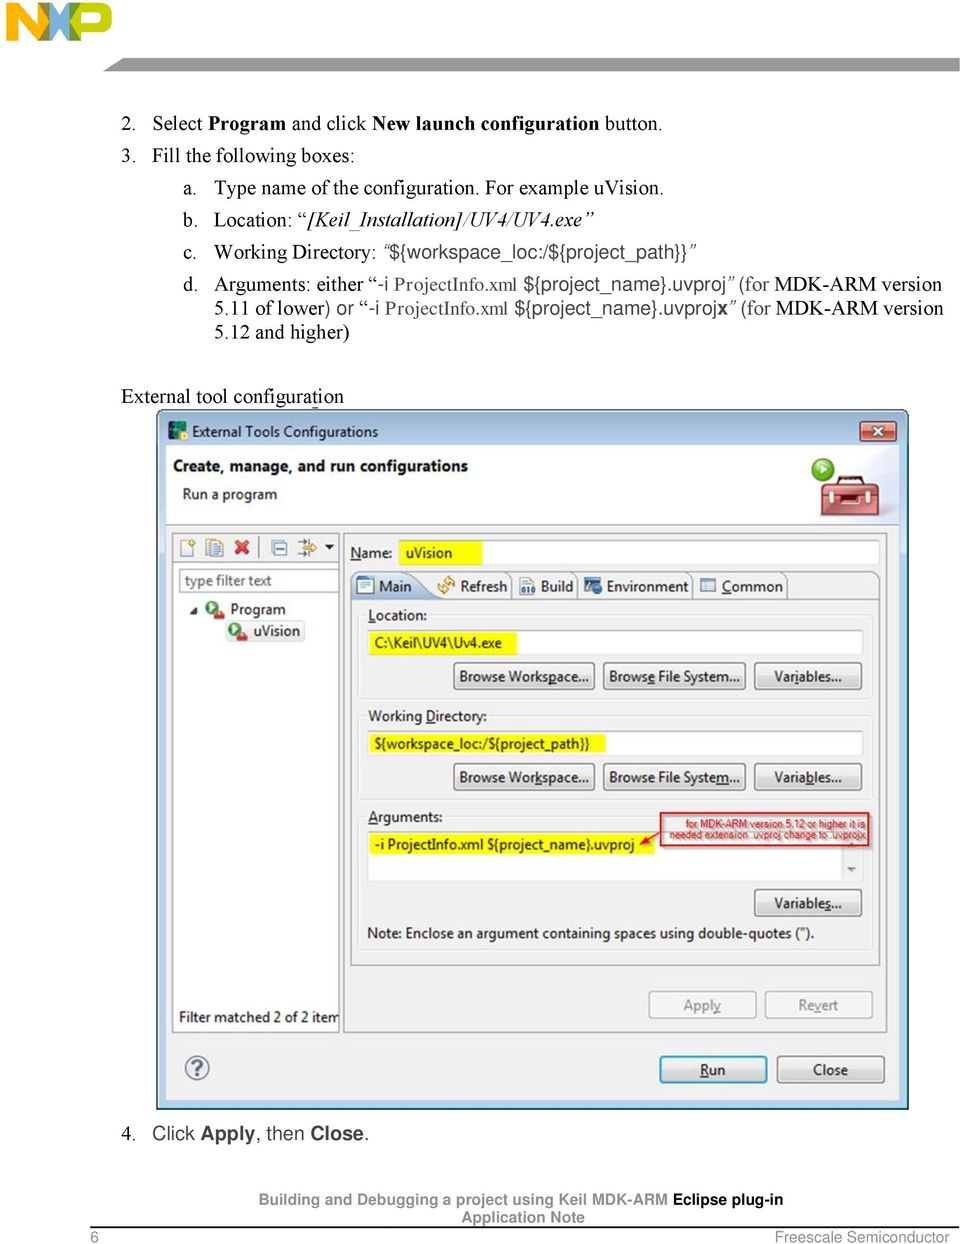 Building and Debugging a project using Keil MDK-ARM Eclipse plug-in